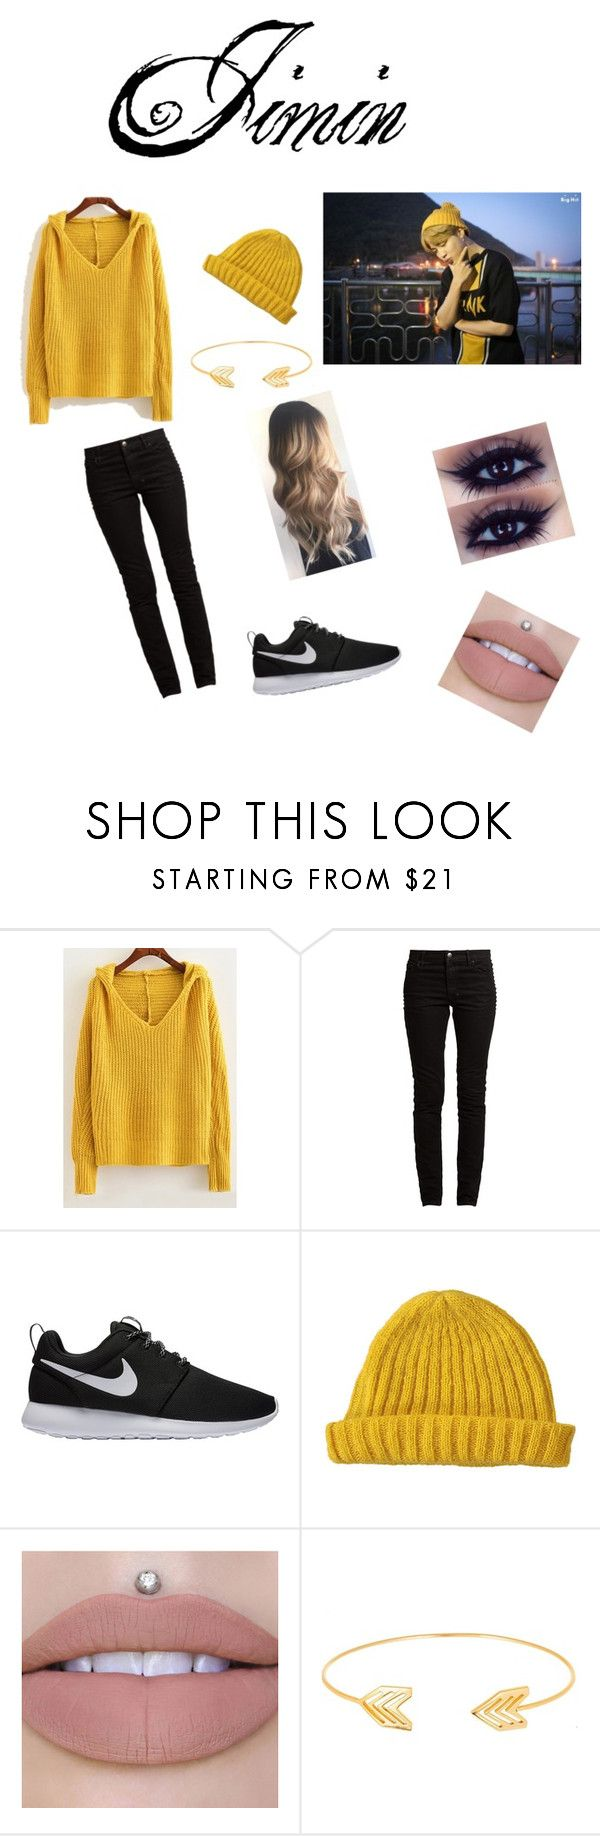 MY future style by astxiksargsyan on Polyvore featuring мода, Valentino, NIKE, Lord & Taylor and Lowie